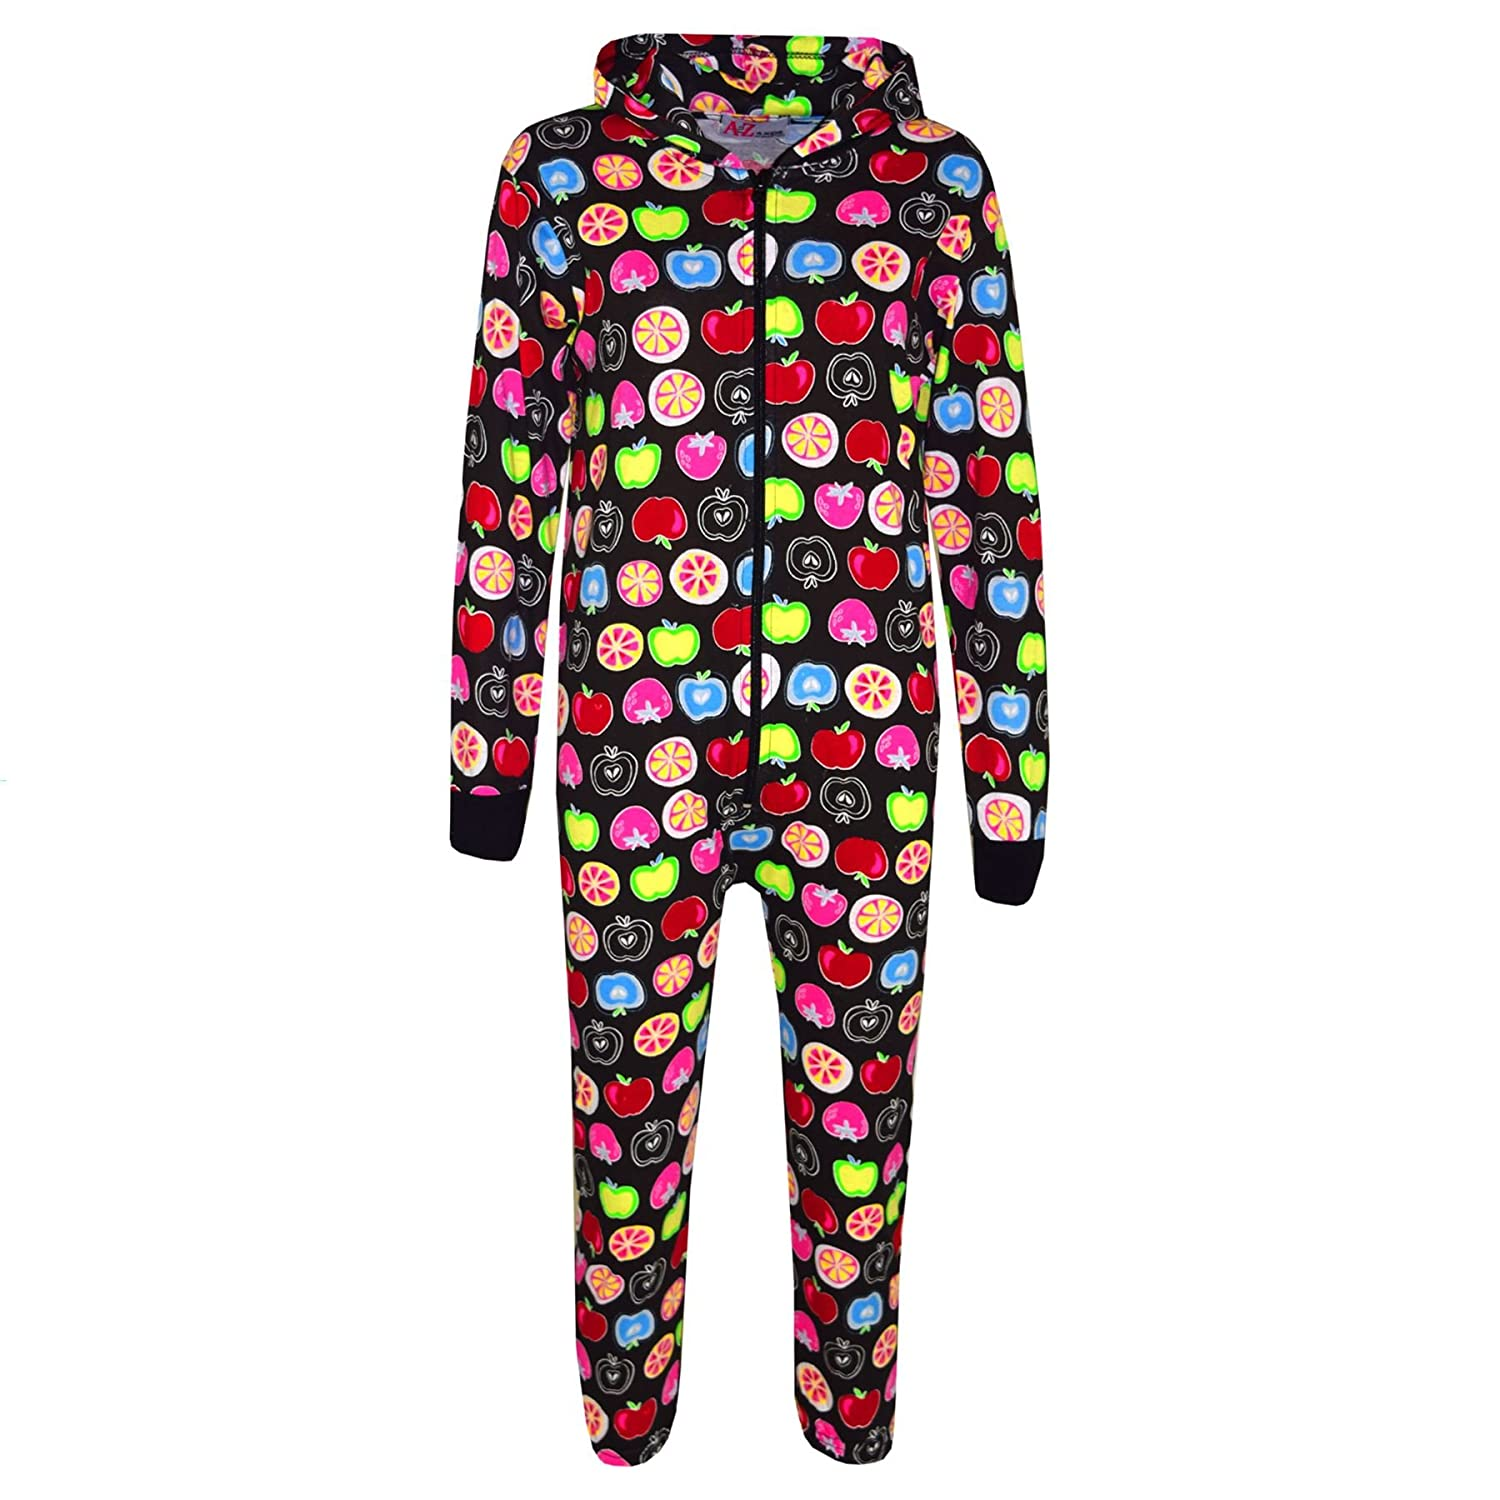 A2Z 4 Kids® Kids Onesie Girls Boys Fruit Print Cotton Hooded A2Z Onesie One Piece All in One Jumpsuit New Age 2 3 4 5 6 7 8 9 10 11 12 13 Years